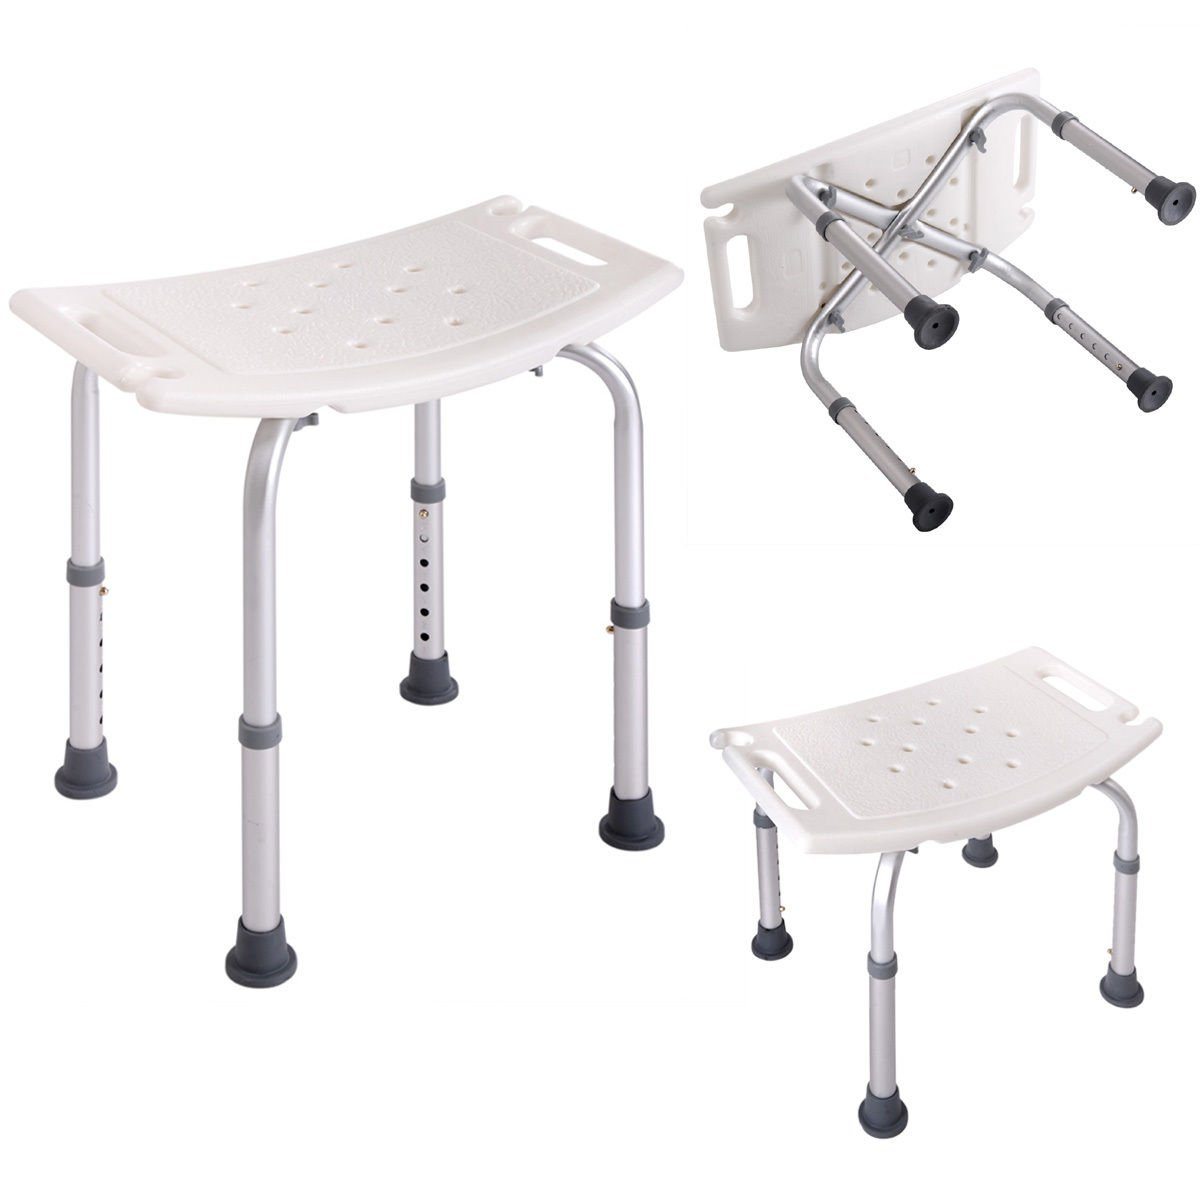 Bath Shower Chair Adjustable Medical 6 Height Bench Bathtub Stool Seat White RECTANGLE